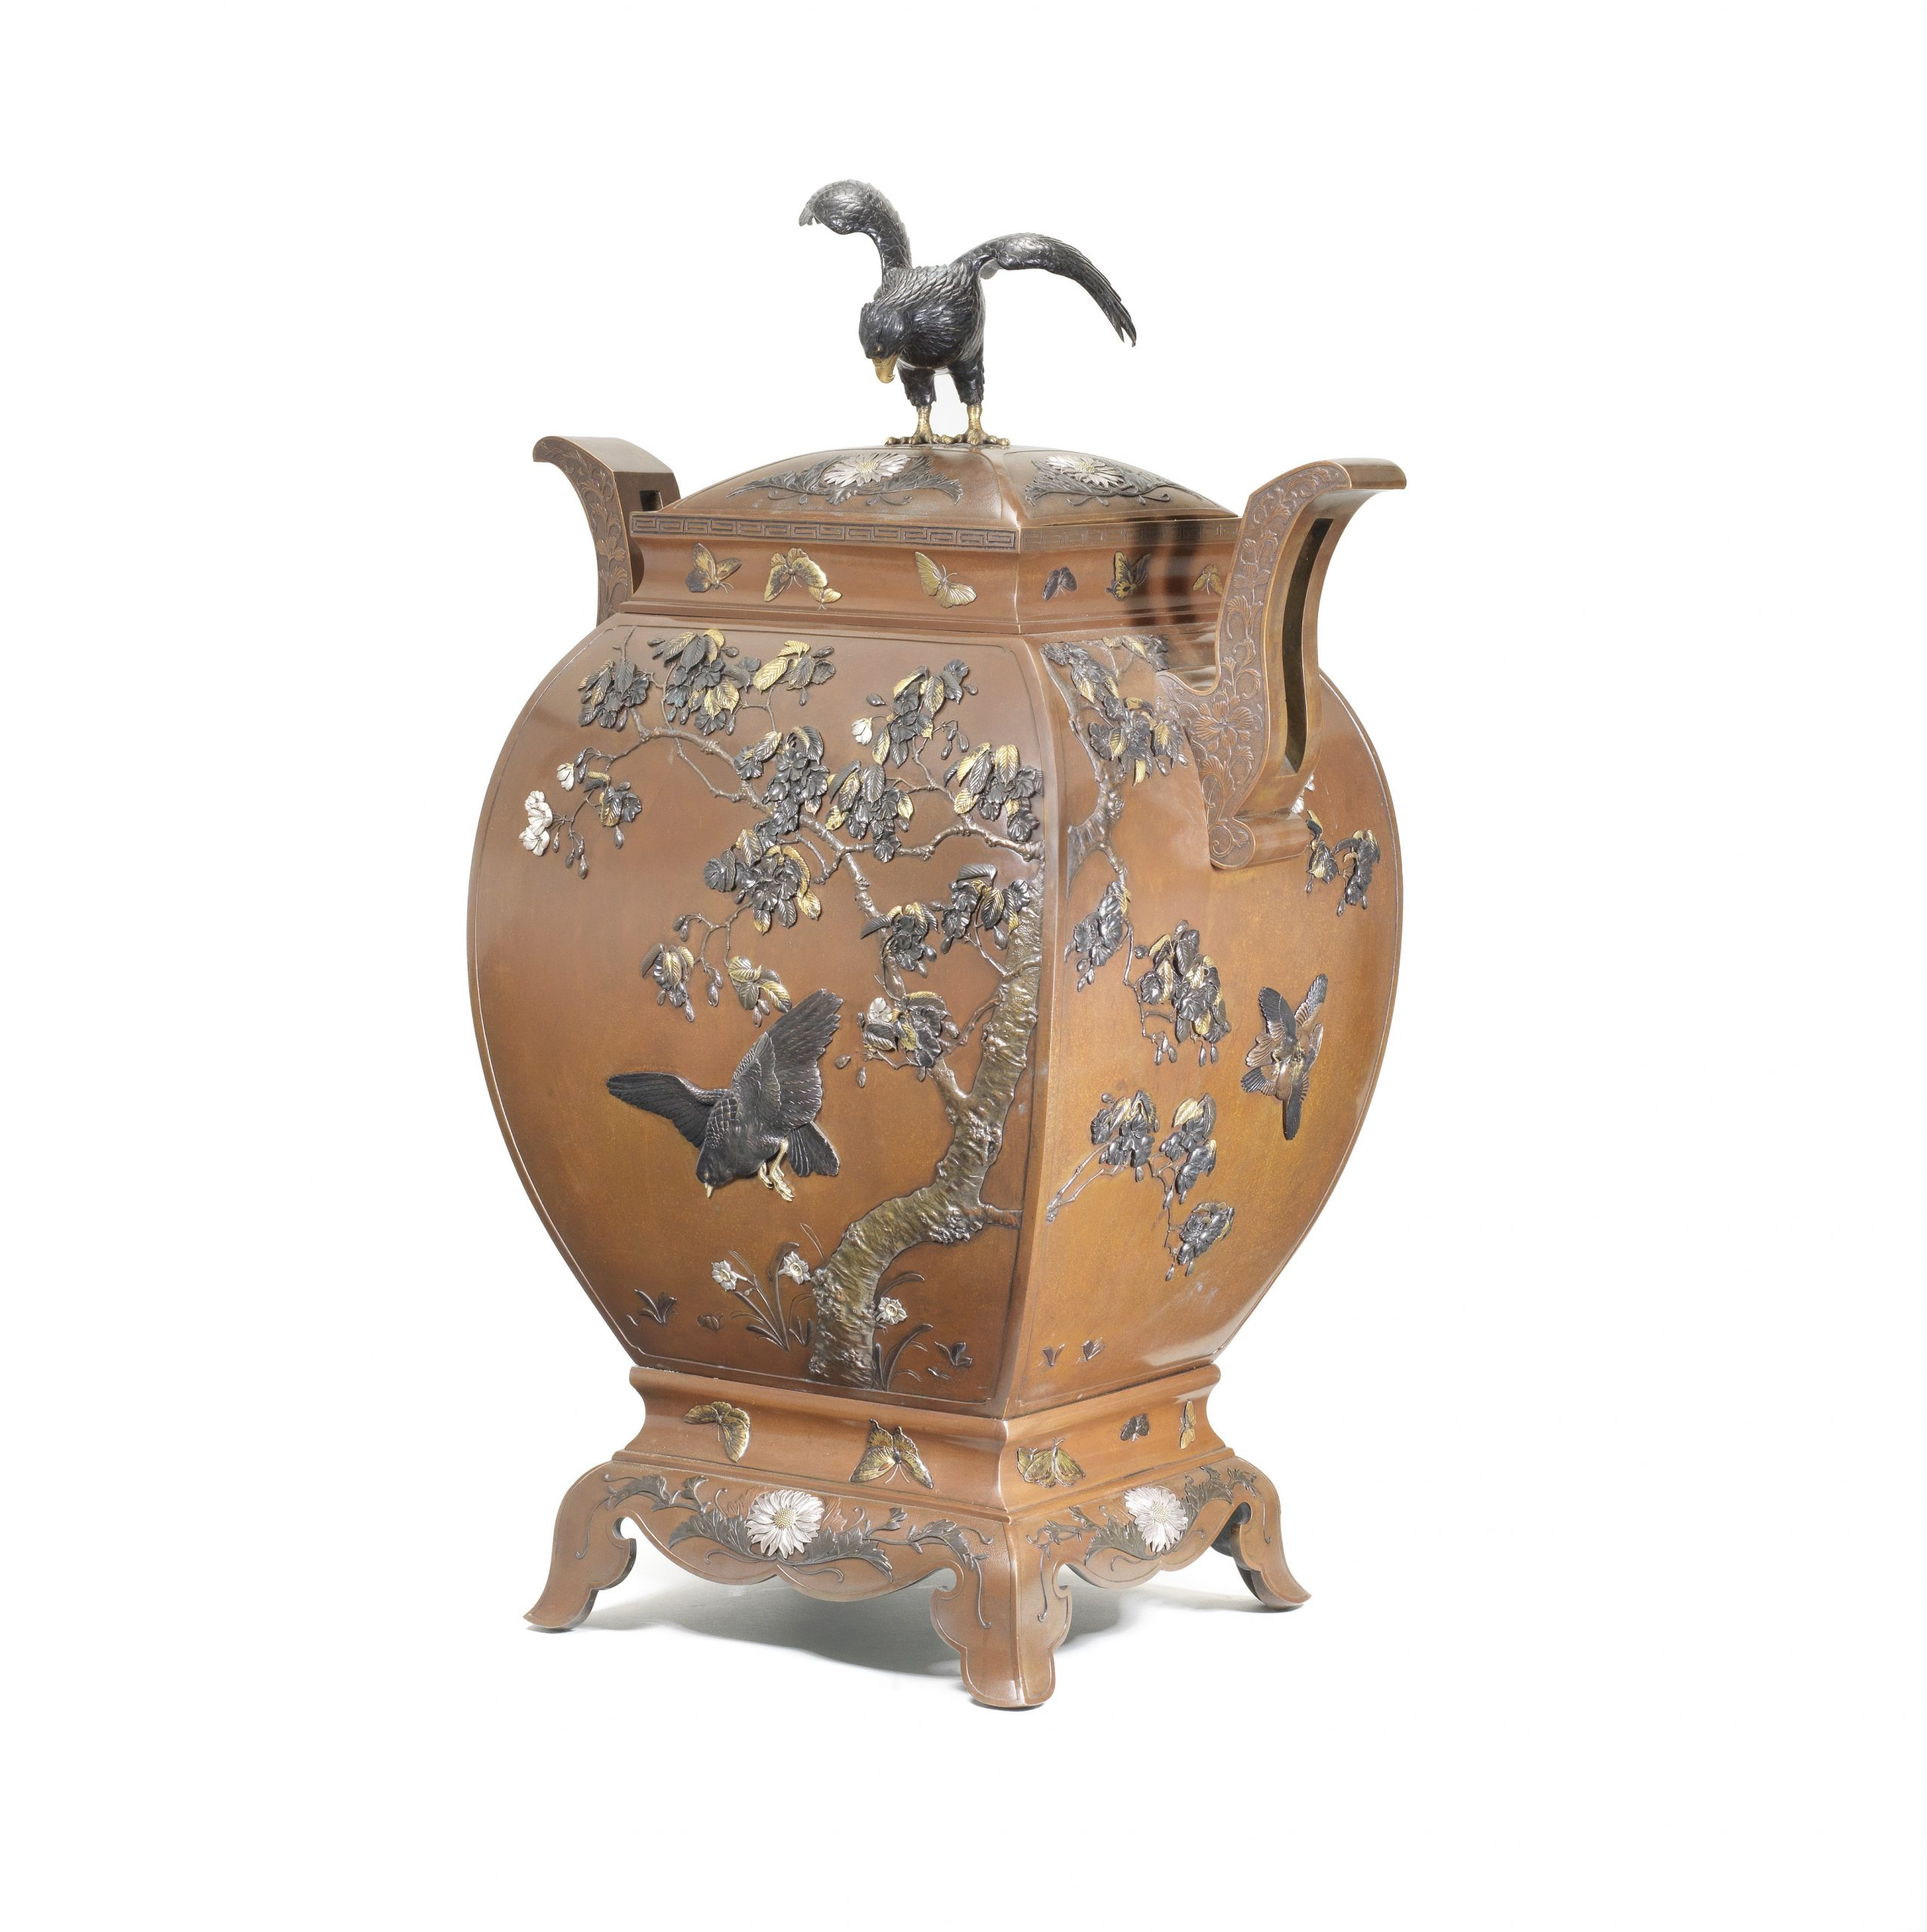 An exceptional, large and finely inlaid bronze futamono (lidded ornamental vessel), Attributed to Kiryu Kosho Gaisha, Meiji Era, 1880-1890's - Snow, Sex and Spectacle